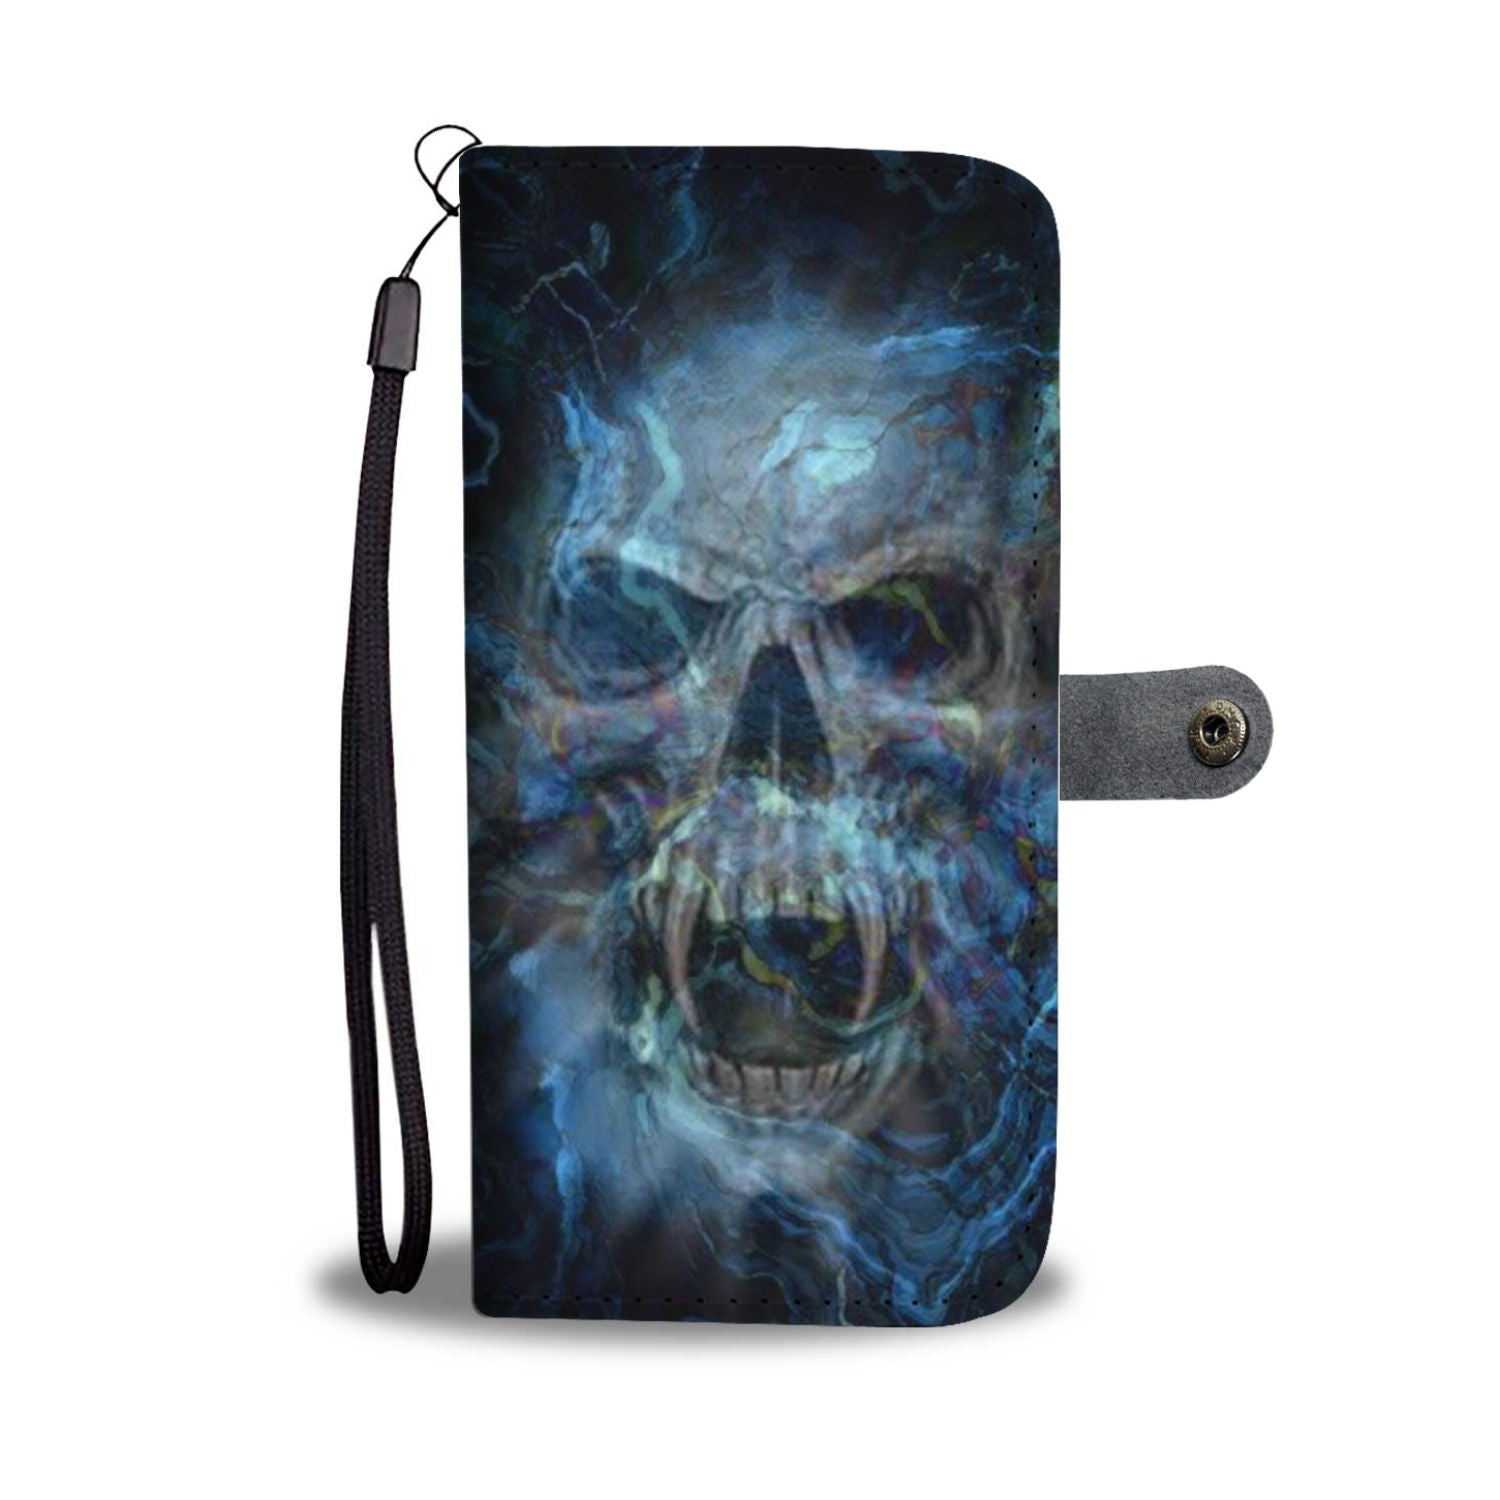 Skull Art Phone Wallet Case 006